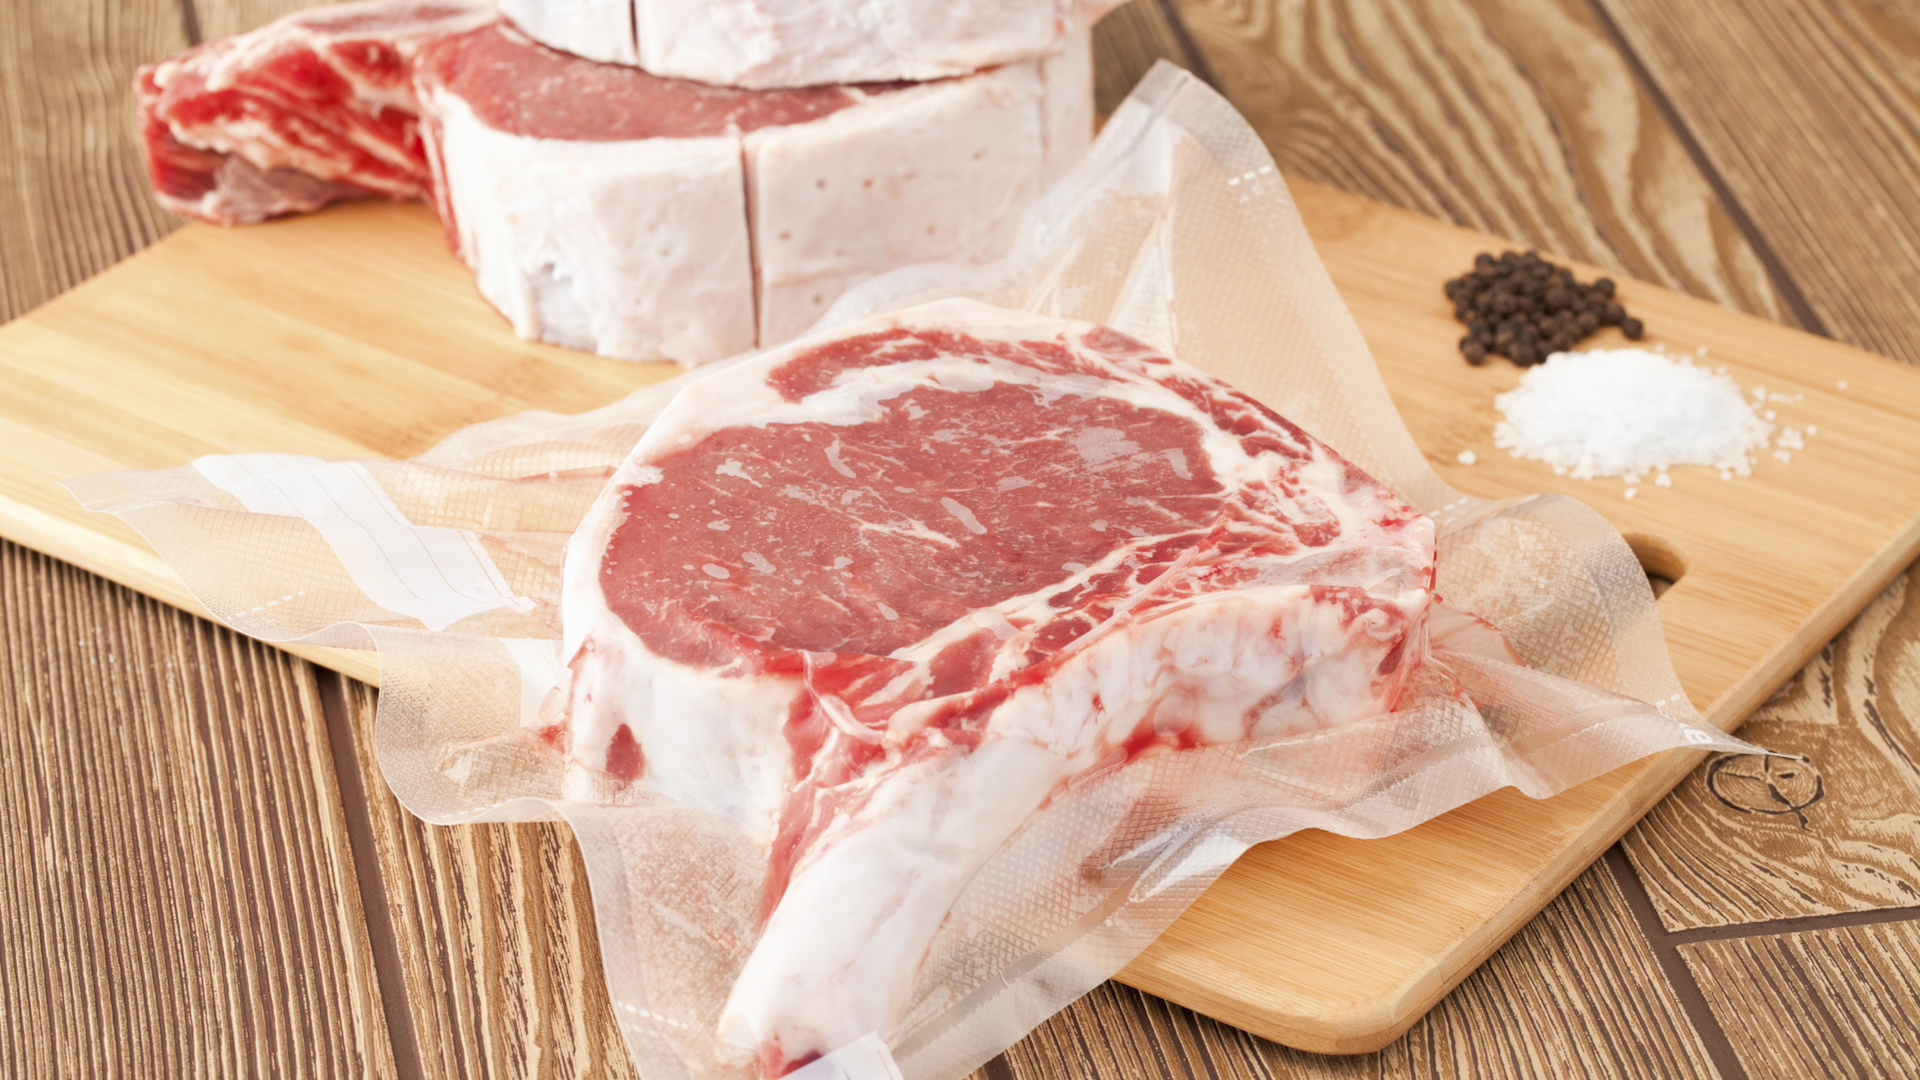 Best ways to freeze meat